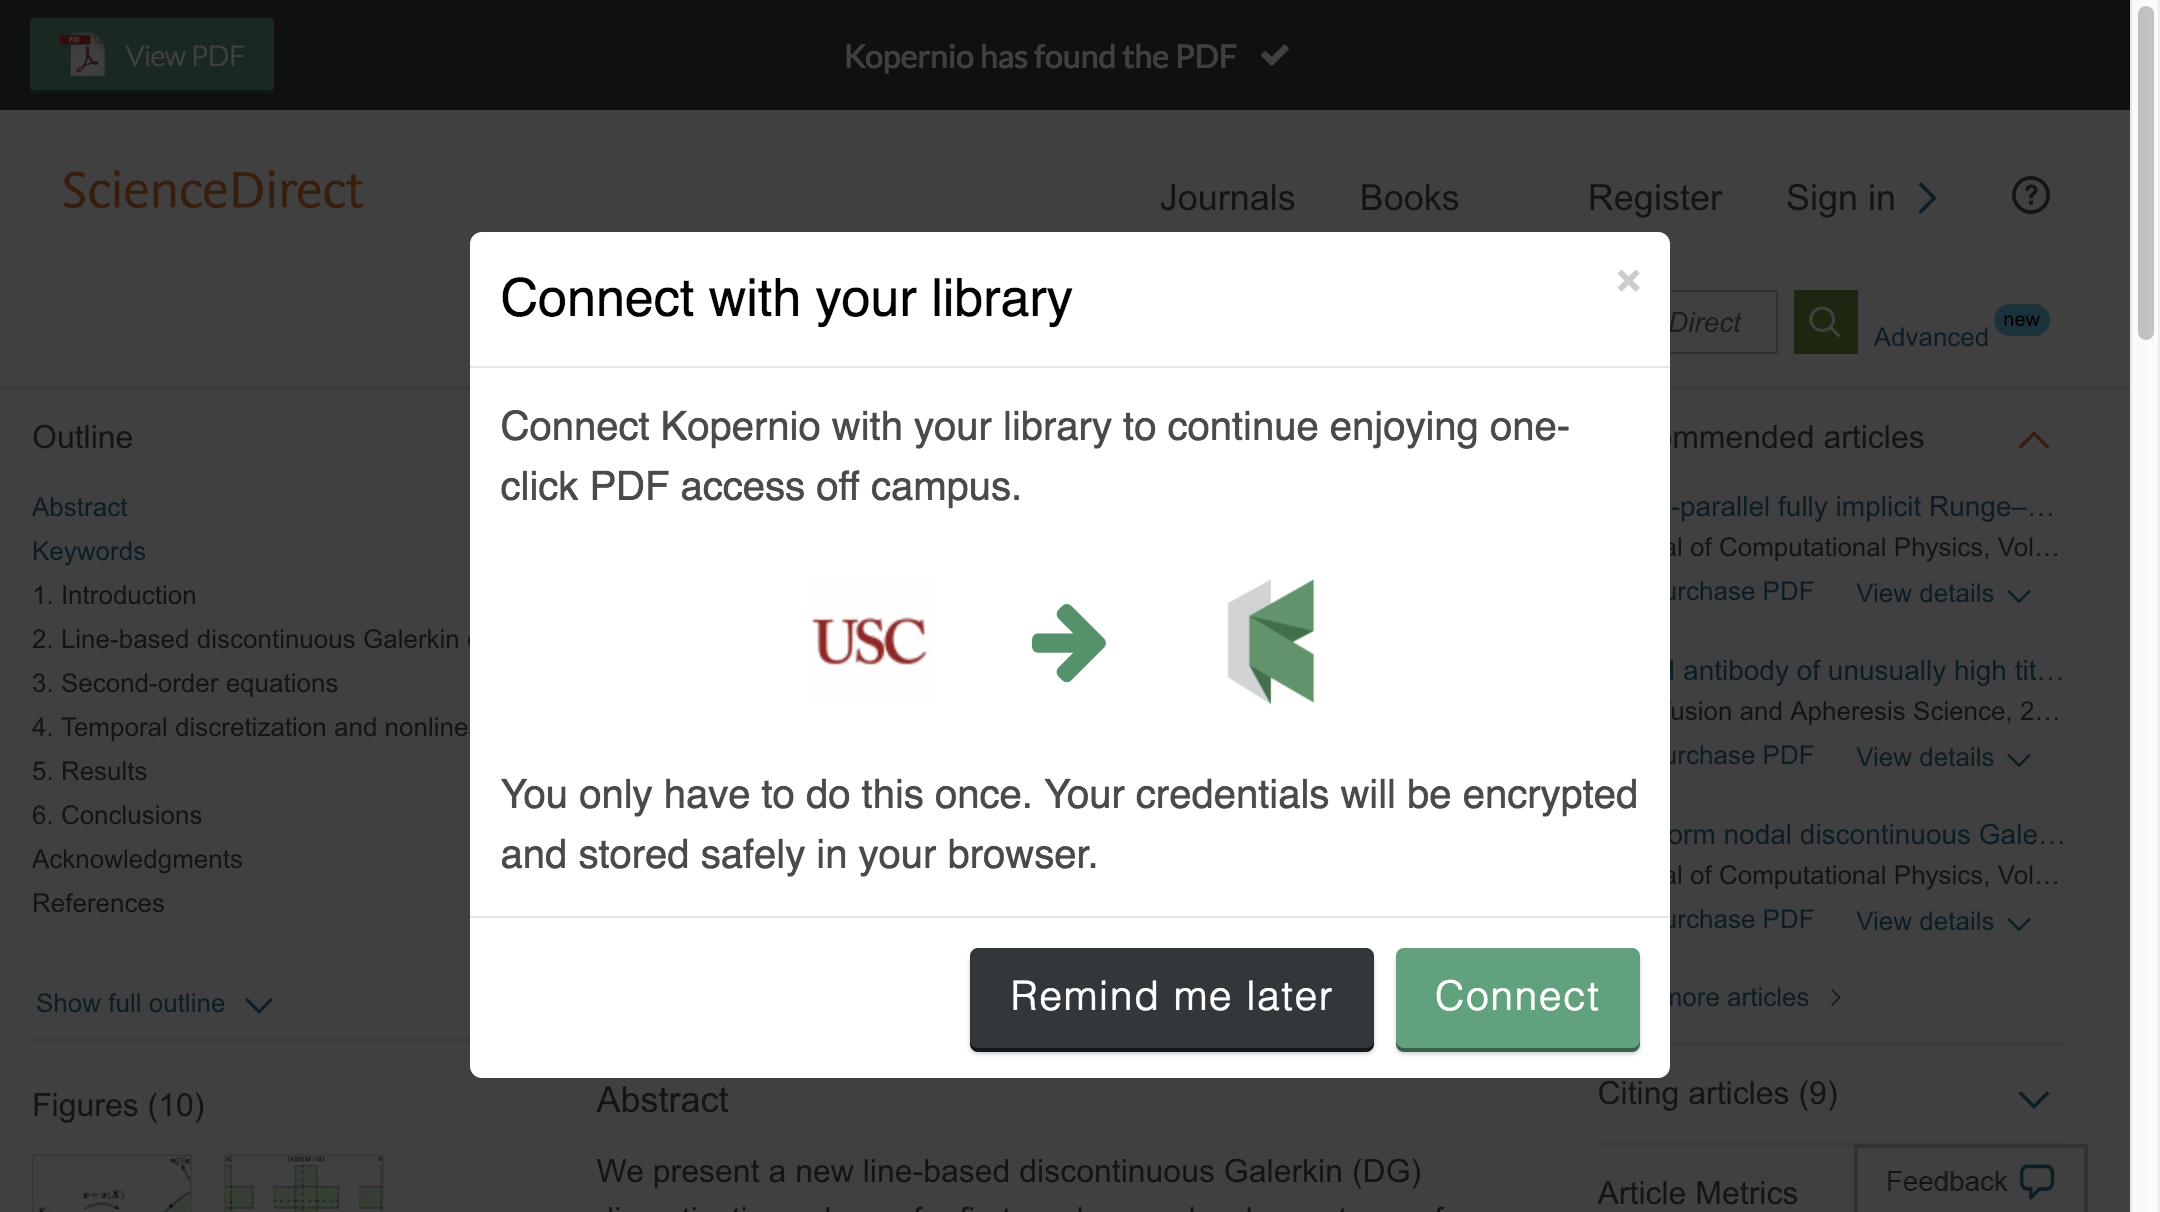 Connect to library prompt for off-campus access to University of Southern California e-resources.